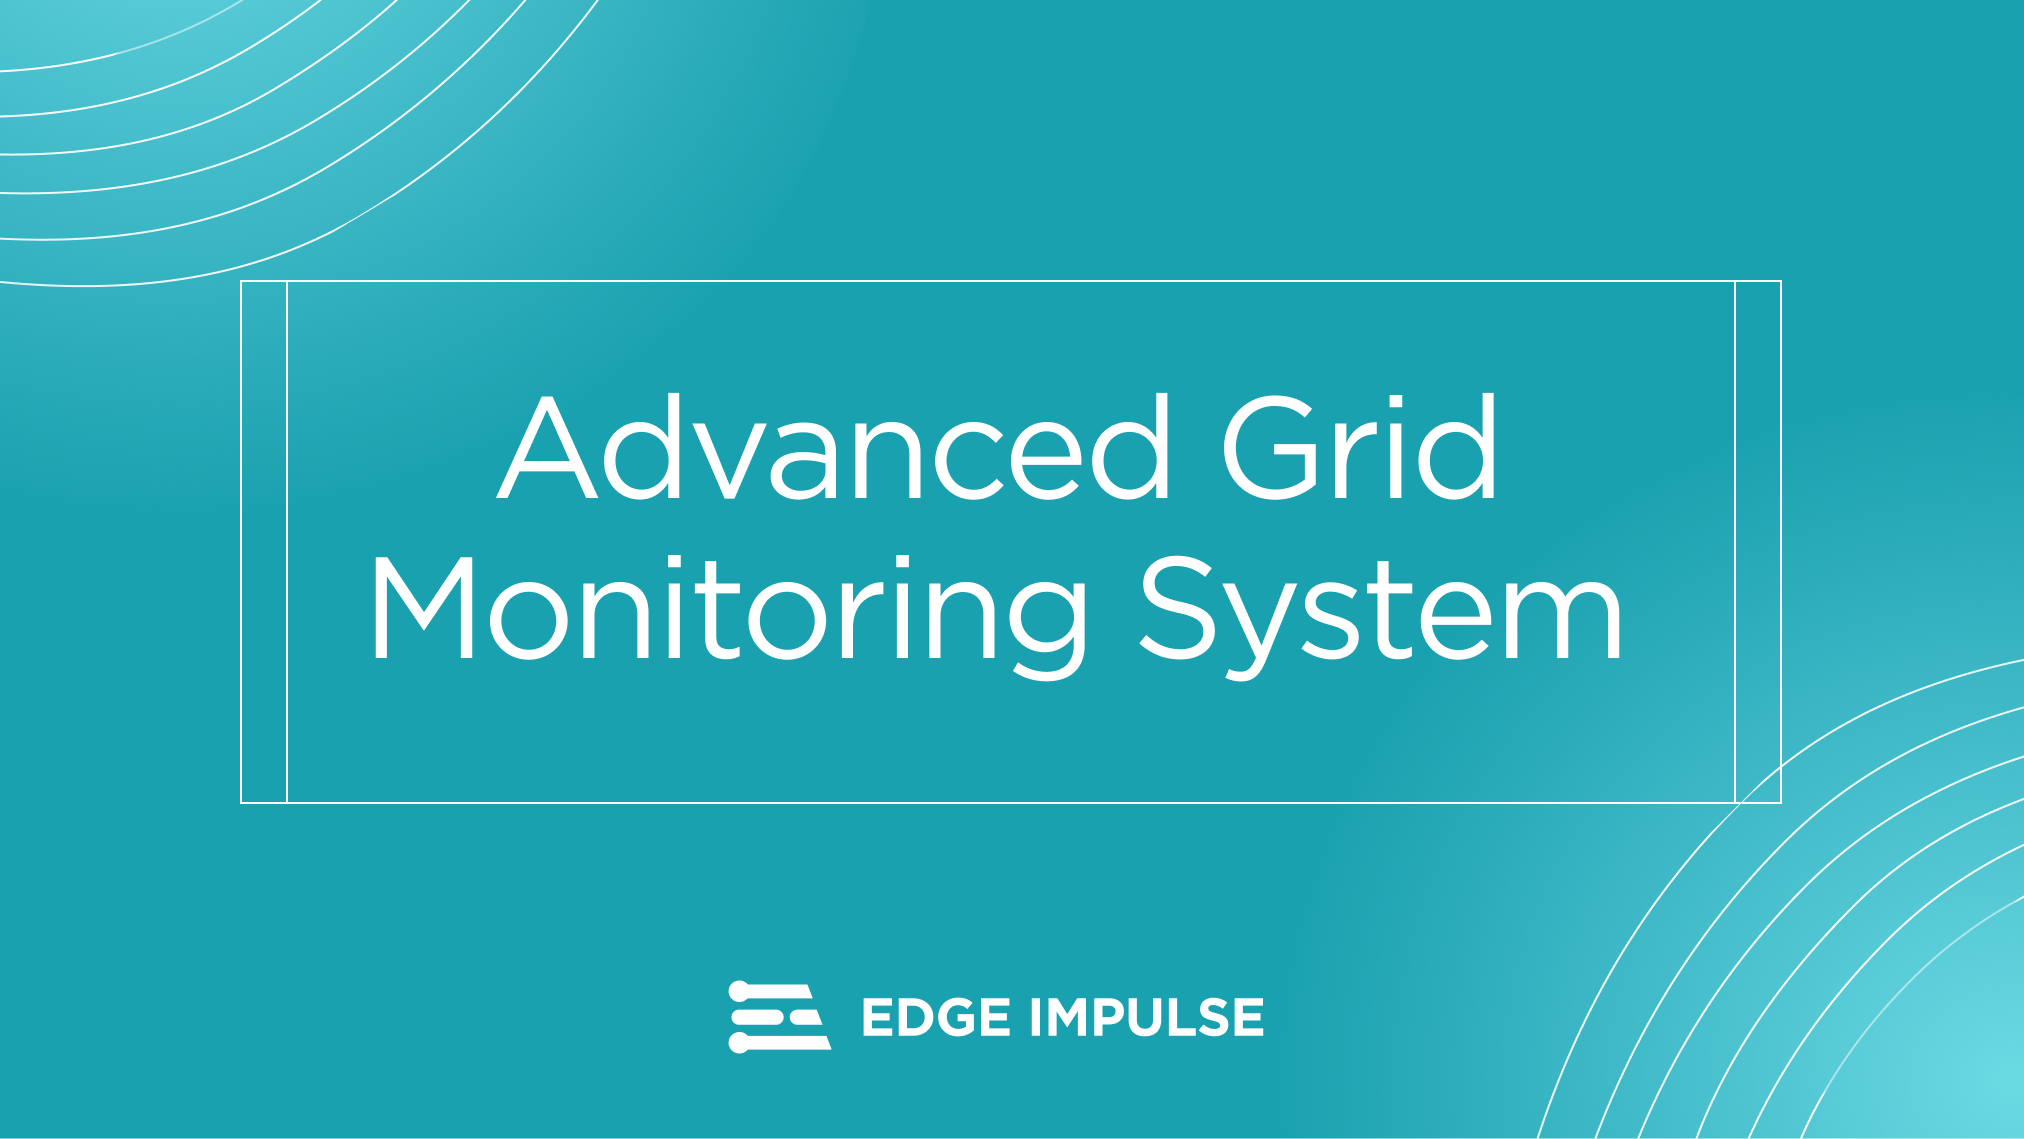 Advanced Grid Monitoring Solution, Powered by Edge Impulse